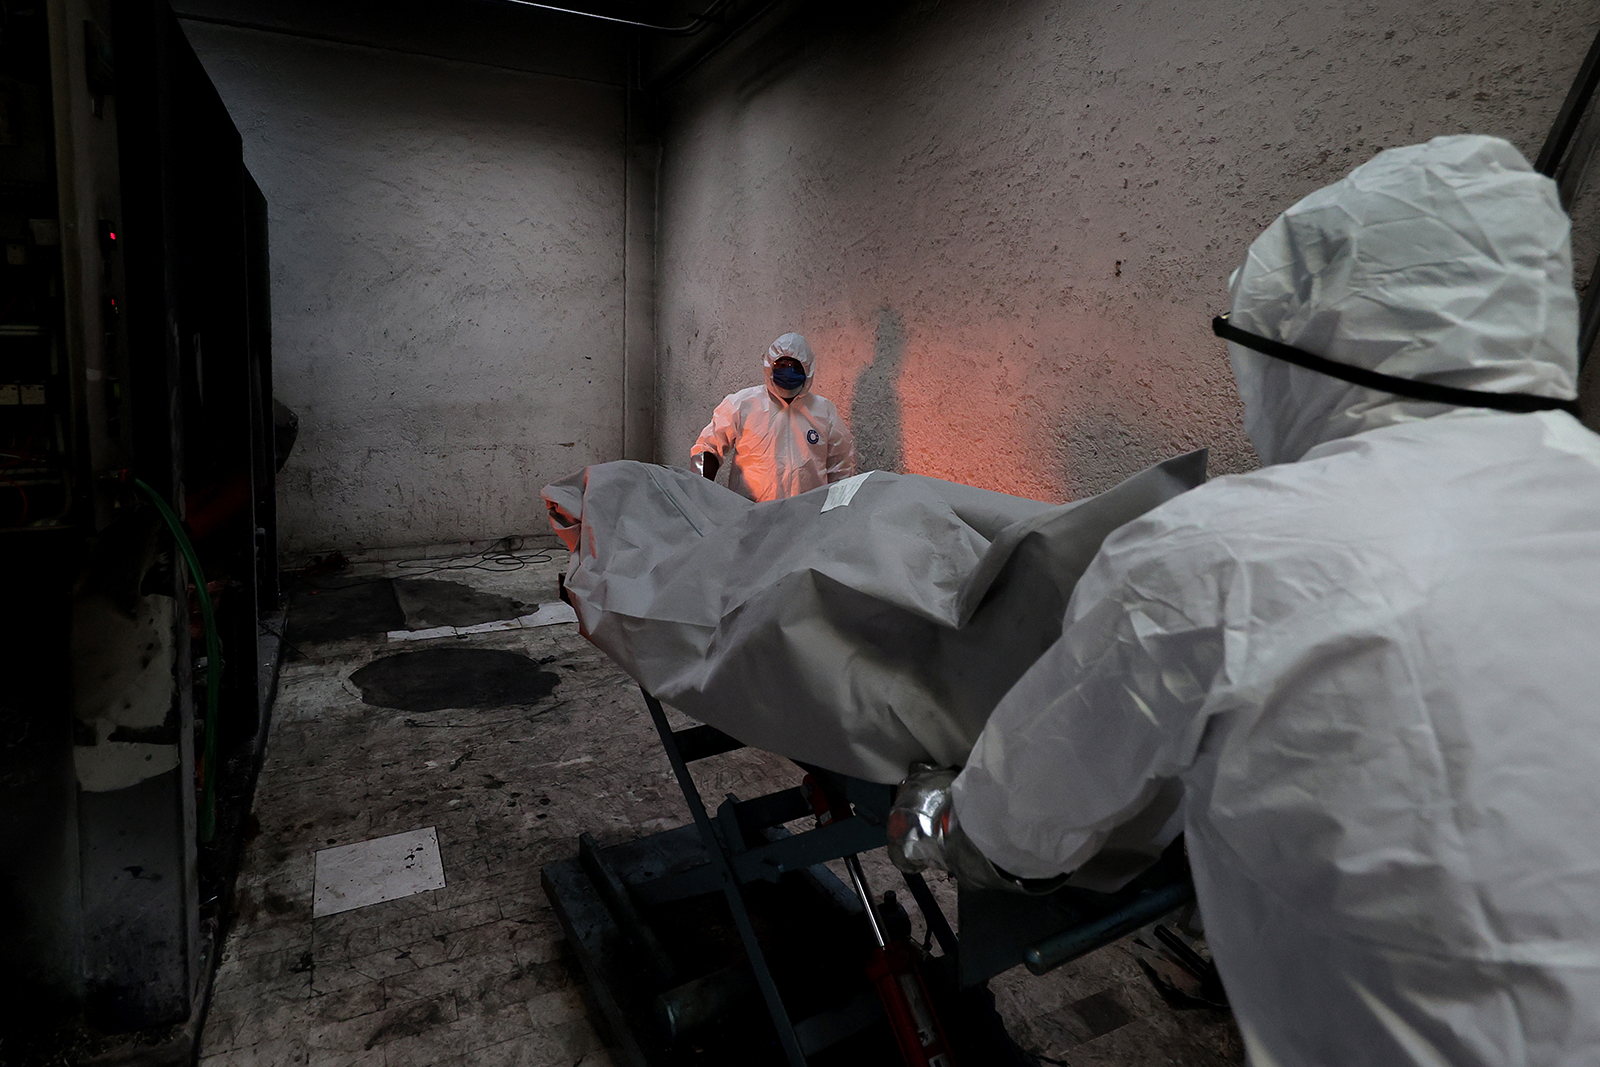 Crematorium workers enter the body of a person who died from Covid-19 into the oven to be cremated at the San Isidro Crematorium in Azcapotzalco on July 15, in Mexico City.